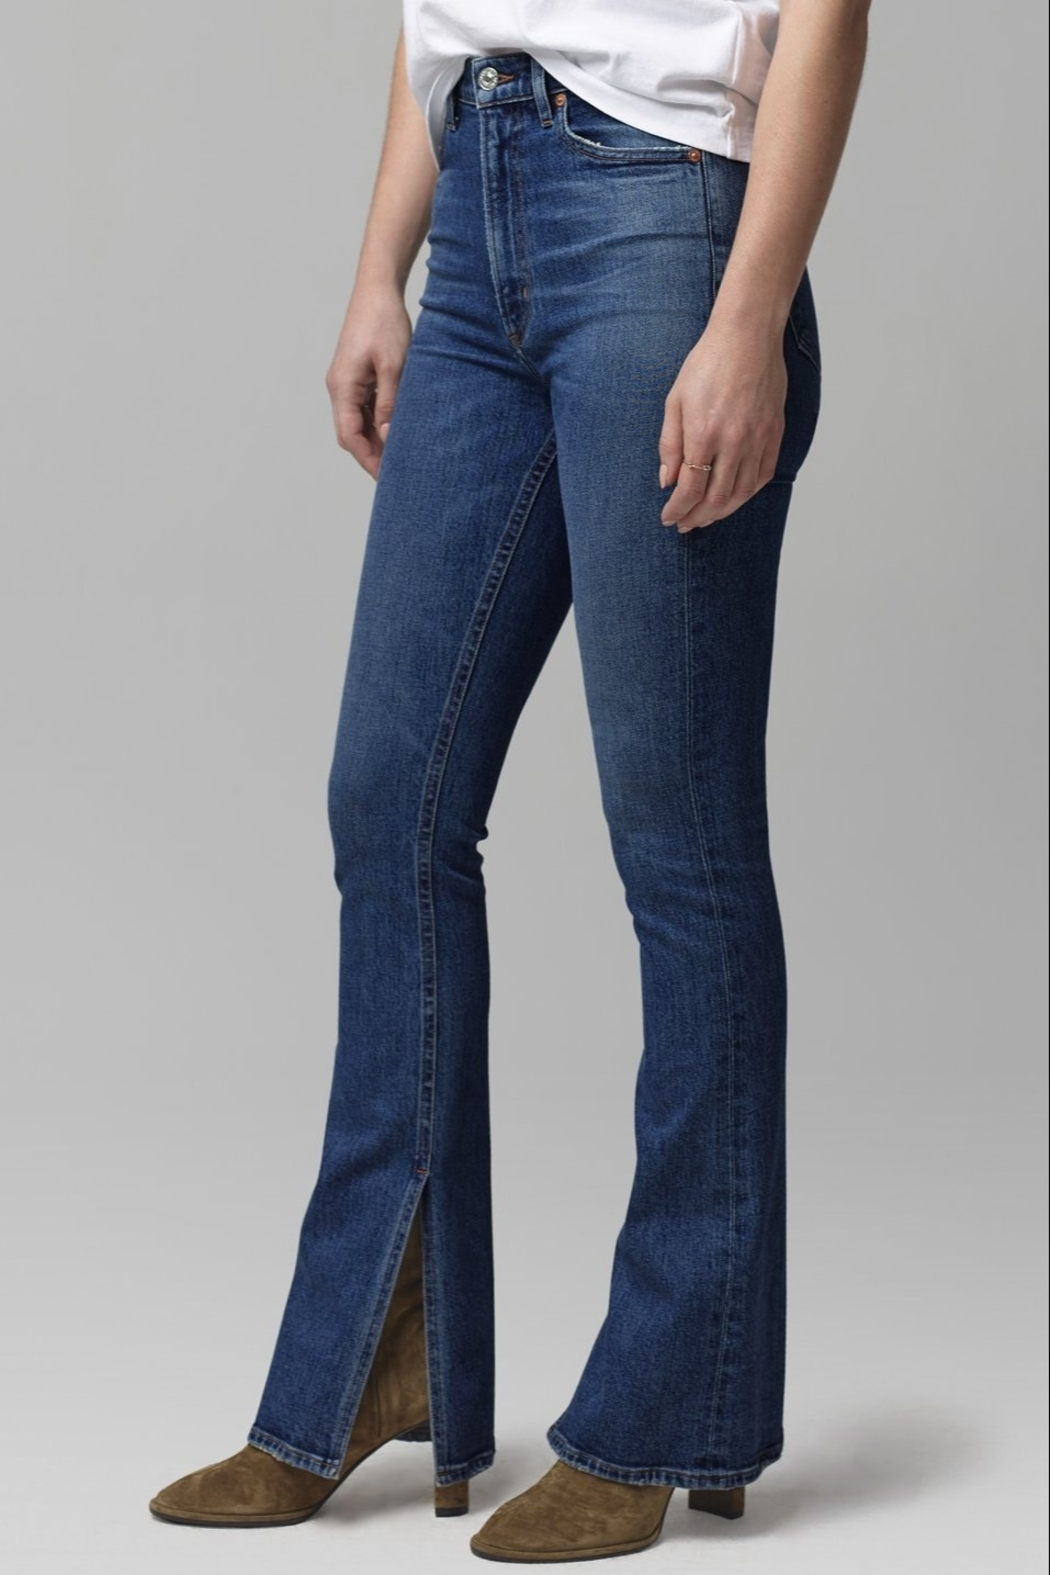 Citizens of Humanity Georgia Flare Jeans in Heist - Front Full Image